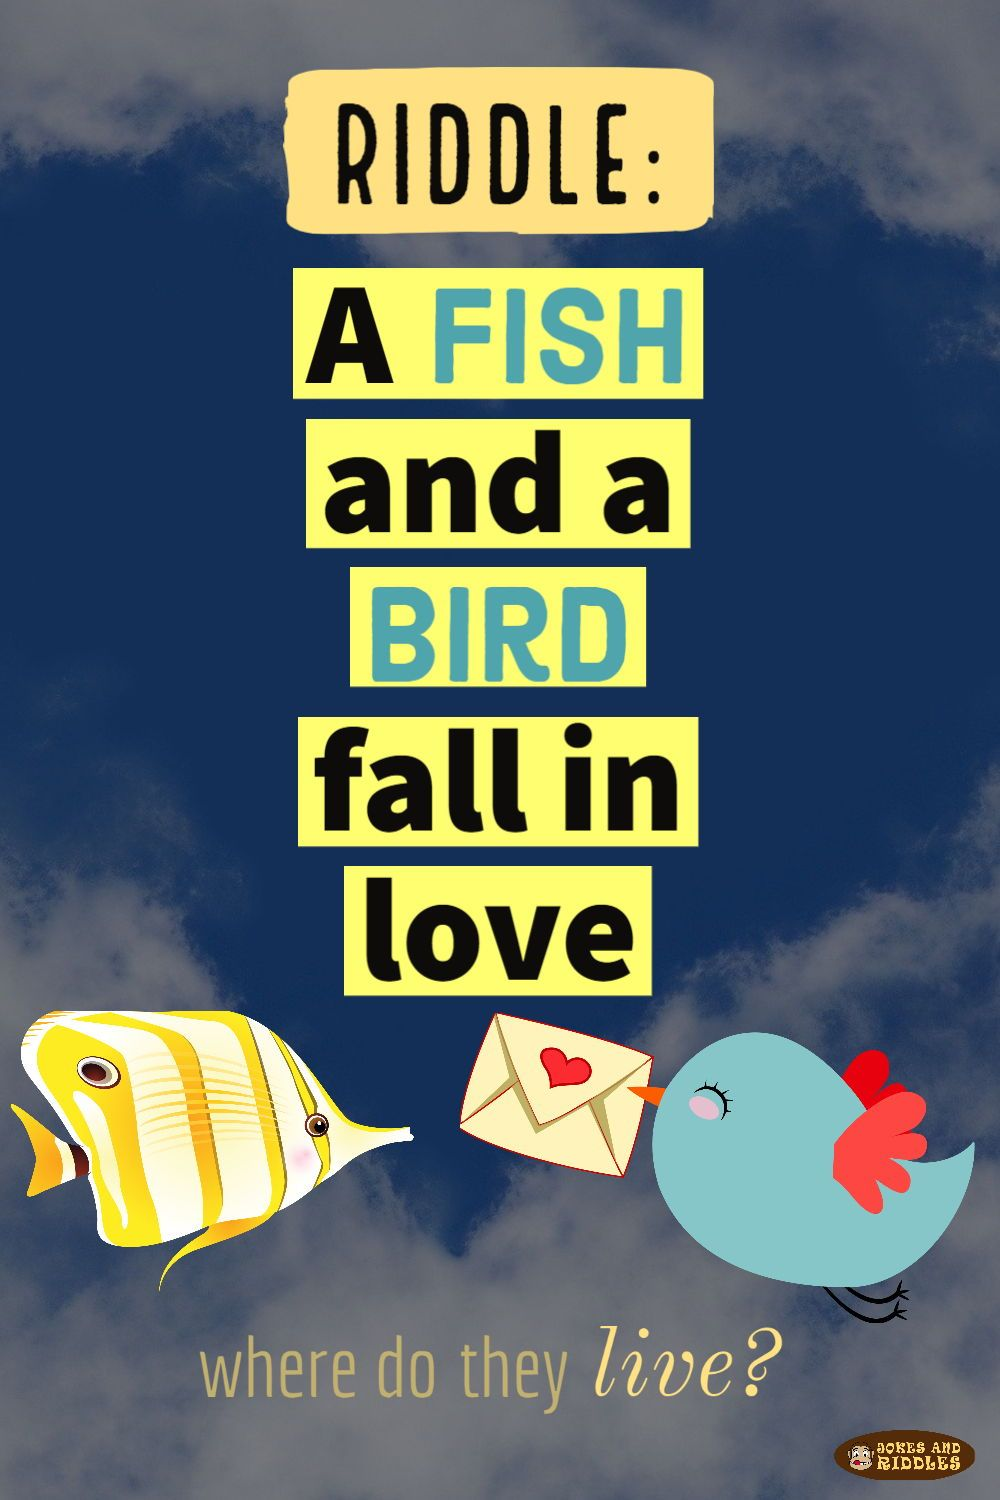 """Here is a funny riddle """"If a fish and a bird fall in love"""